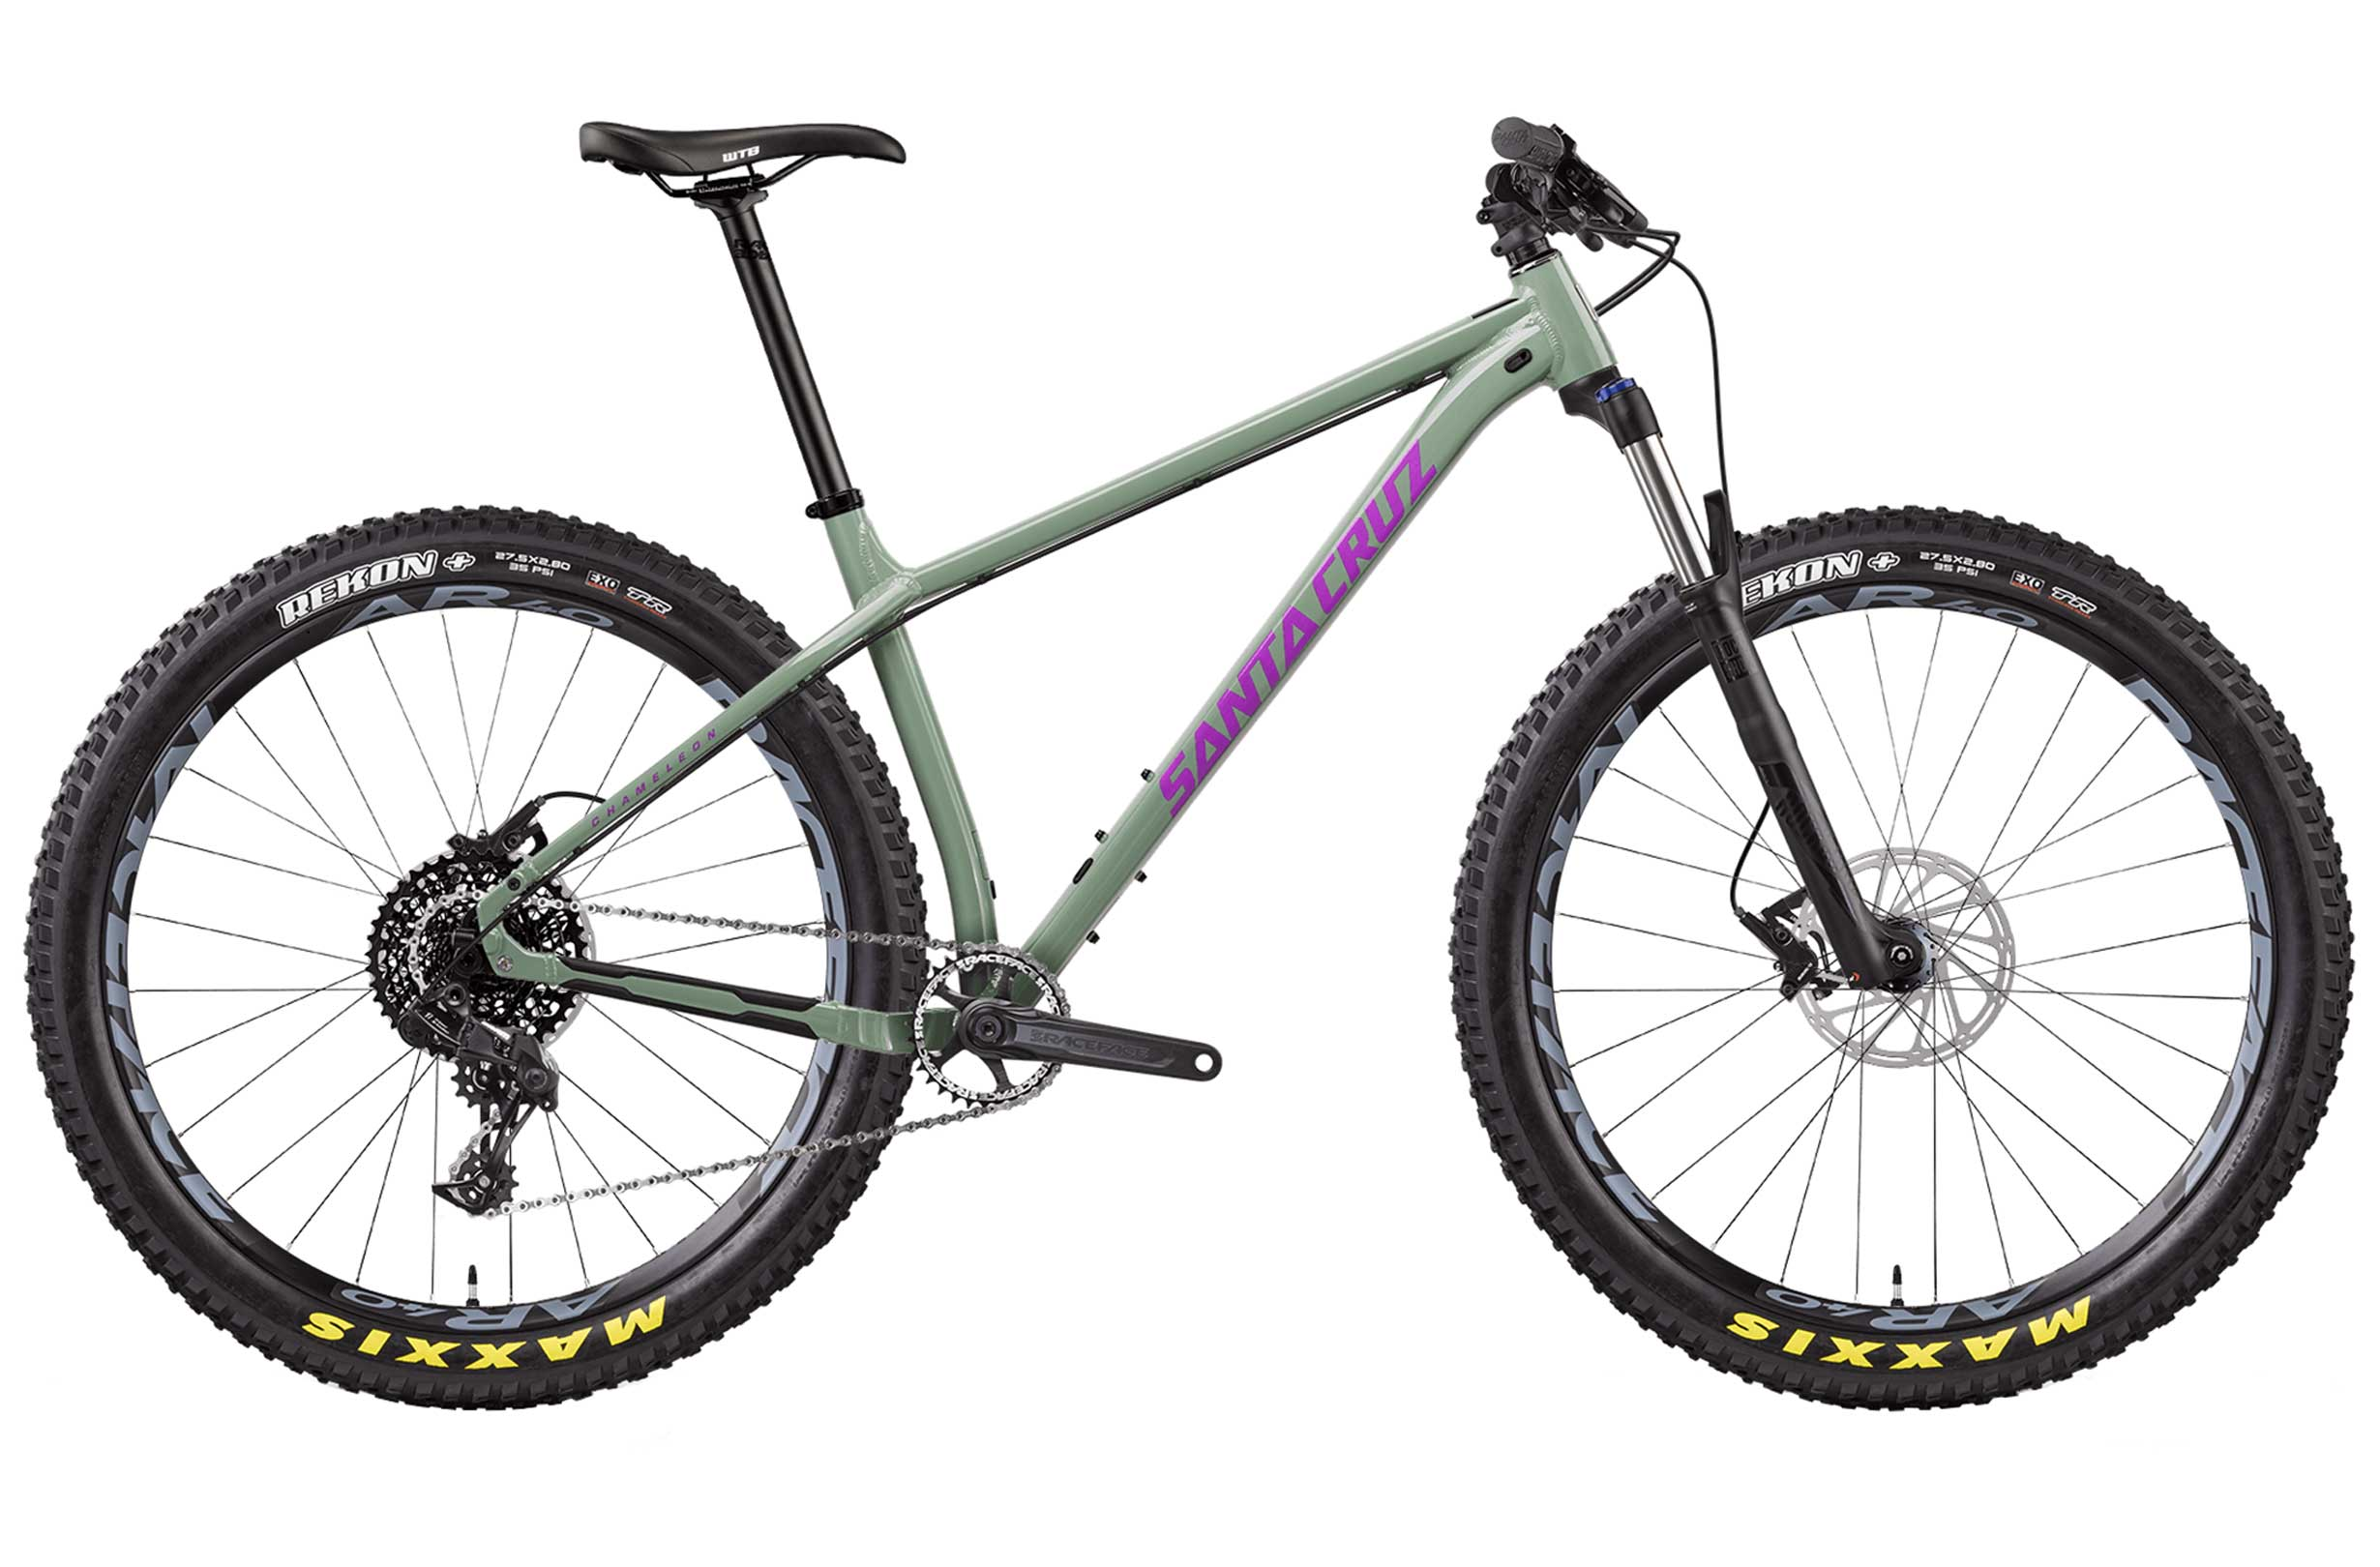 Santa Cruz Chameleon D- The lone warrior for riding on the mountain